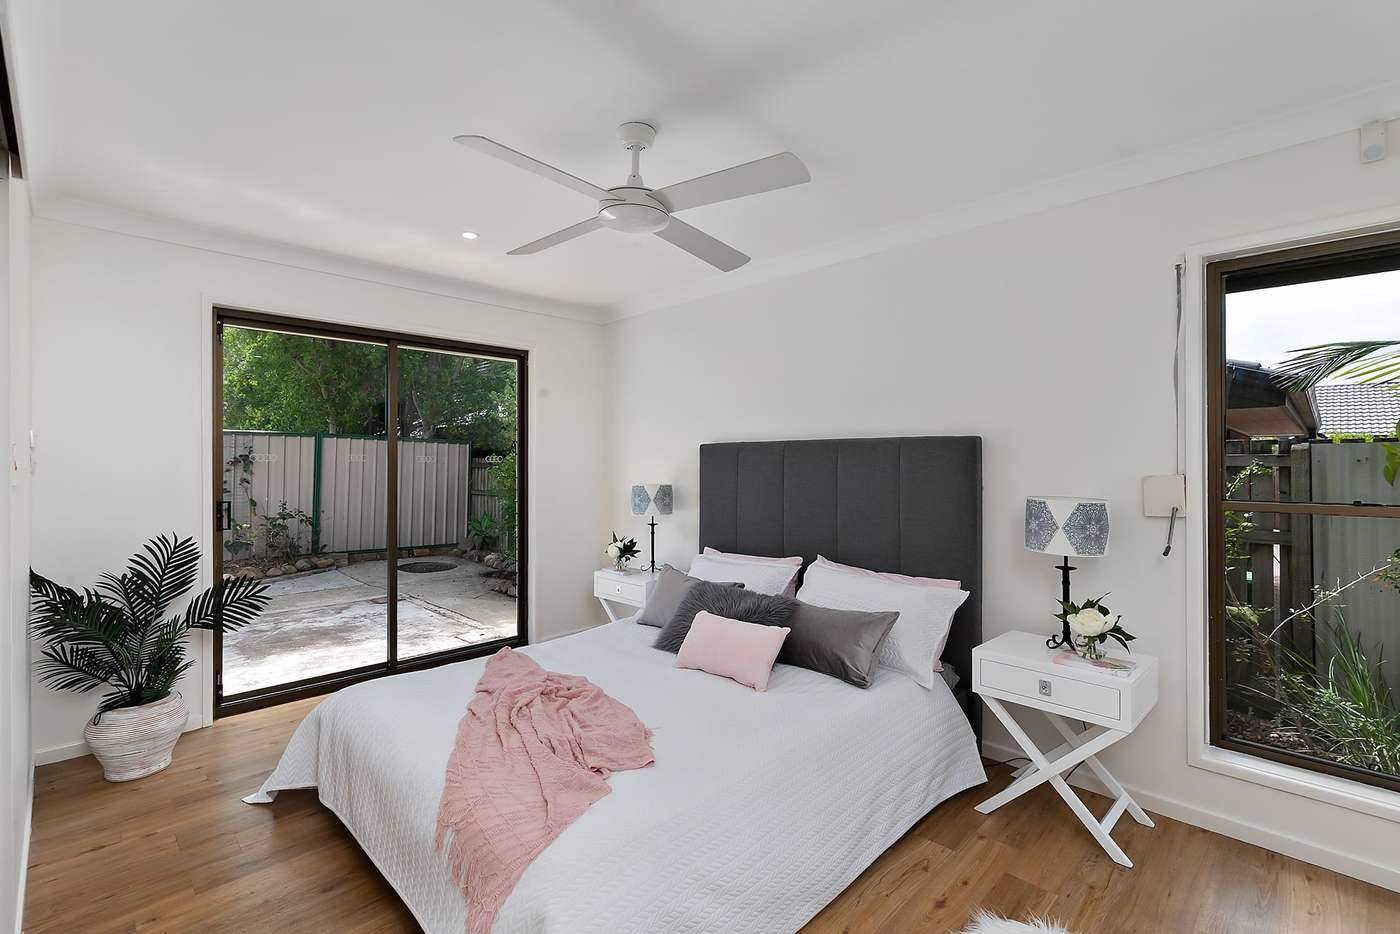 Sixth view of Homely house listing, 495 Manly Road, Manly West QLD 4179